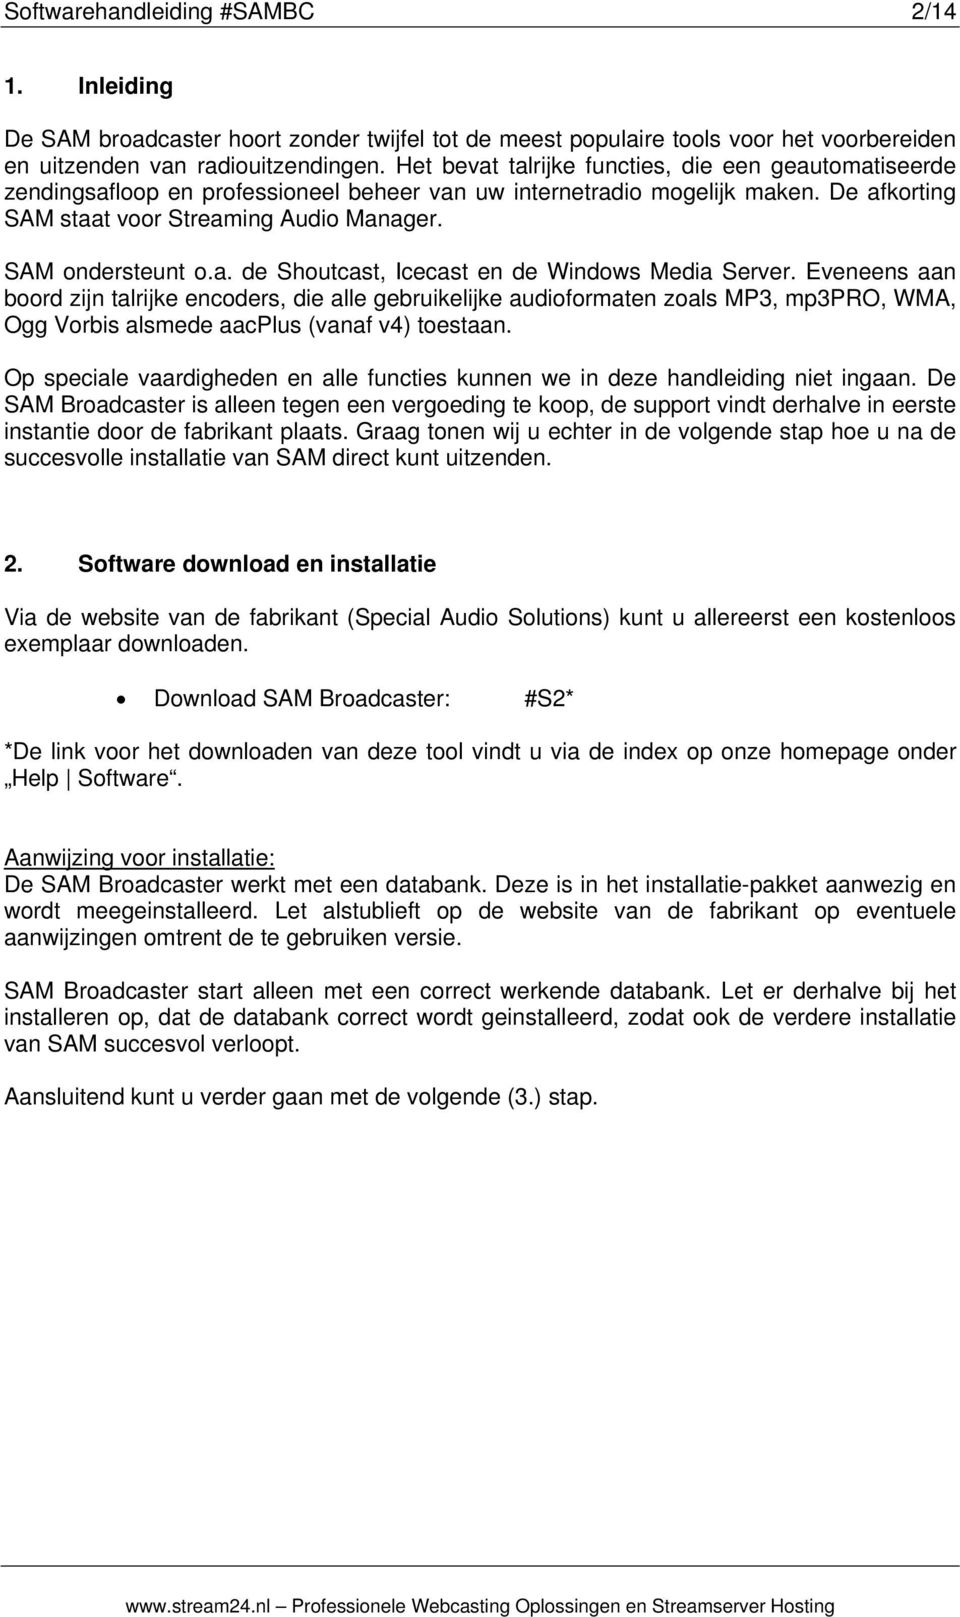 SAM ondersteunt o.a. de Shoutcast, Icecast en de Windows Media Server.